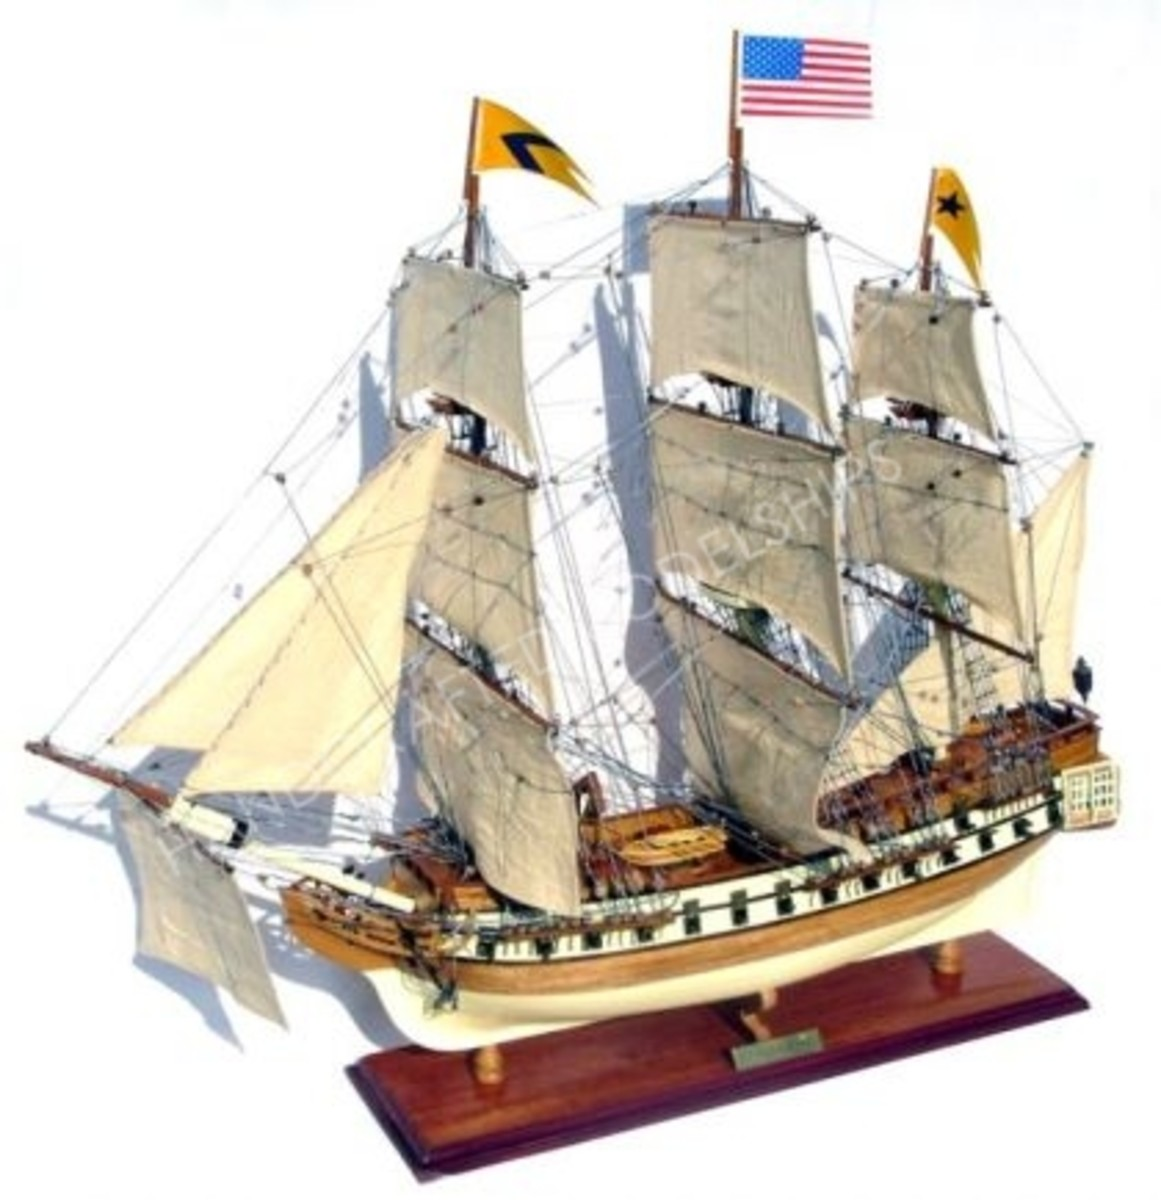 Assembled Model of the Original Frigate: USS Bonhomme Richard. Fought against the Serapis at the Battle of Flamborough Head. http://www.handcraftedmodelships.com/uss-bonhomme-richard-boat-model3.php